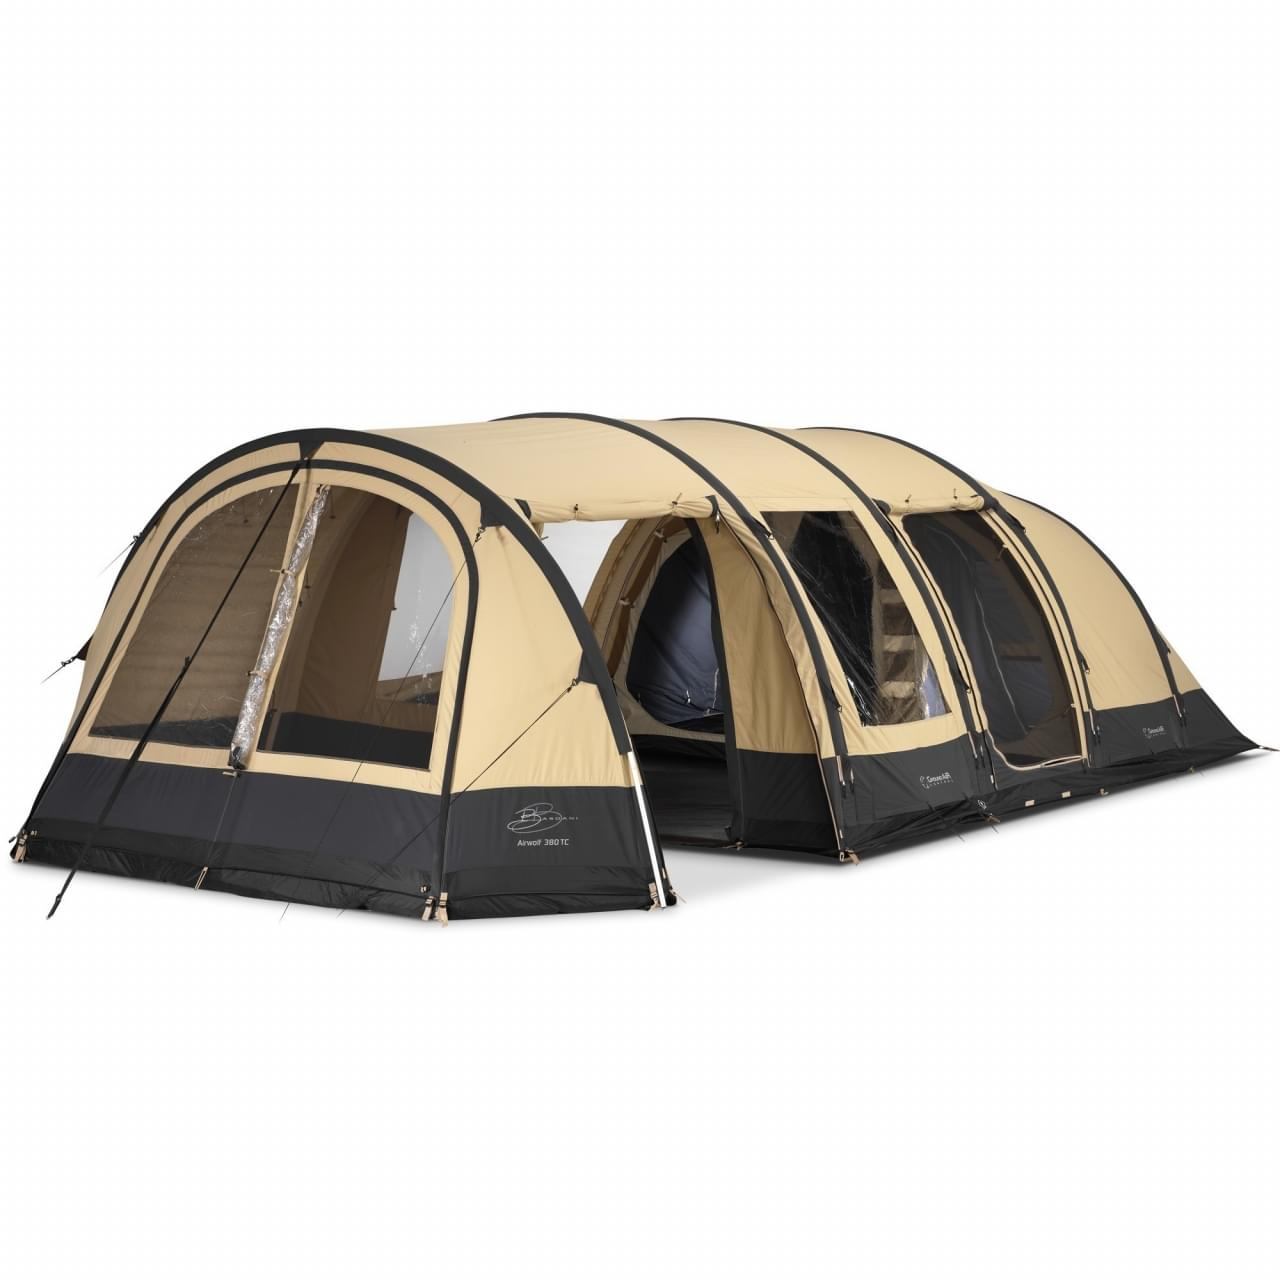 Bardani Airwolf 380 TC - 5 Persoons Tent